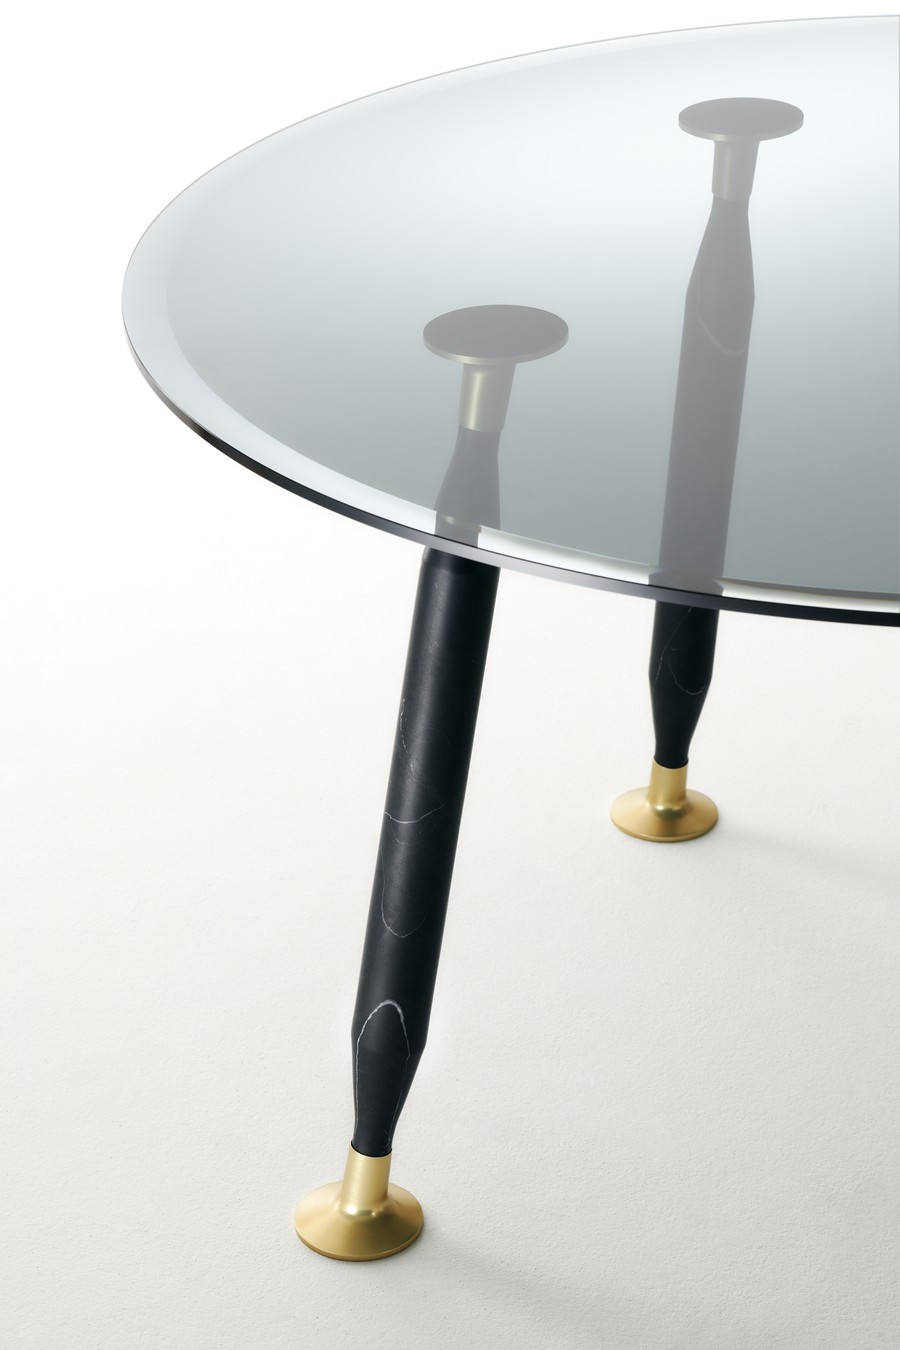 milan design week Milan Design Week: the novelties from some top brands (Part 1) LADY HIO PhilippeStarck SergioSchito 03